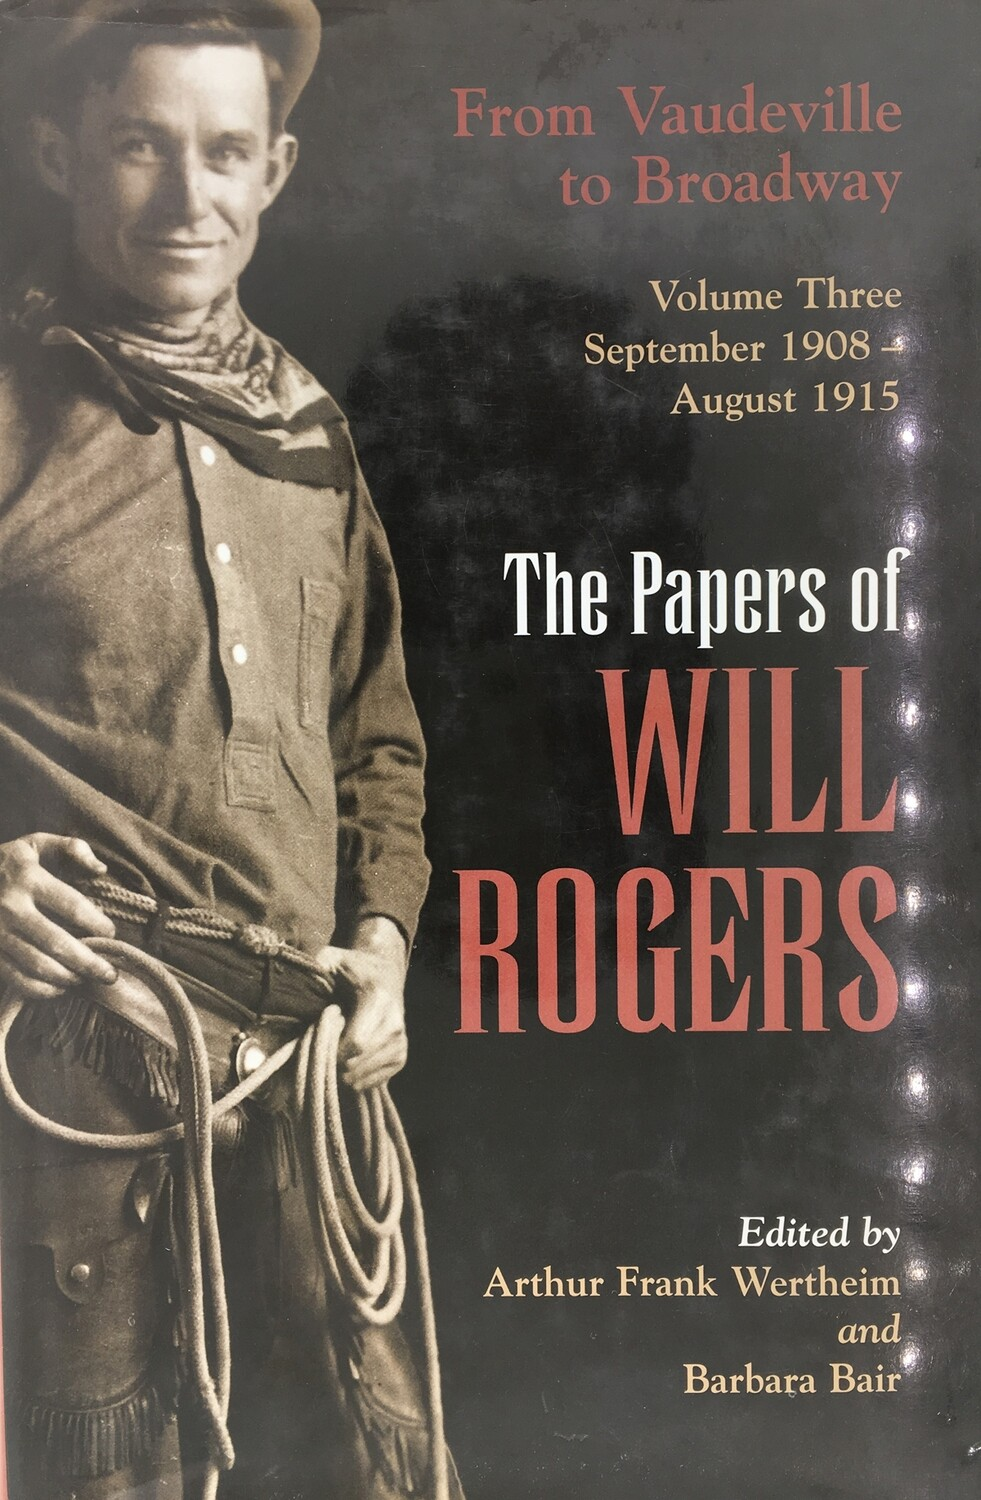 The Papers of Will Rogers Volume 3